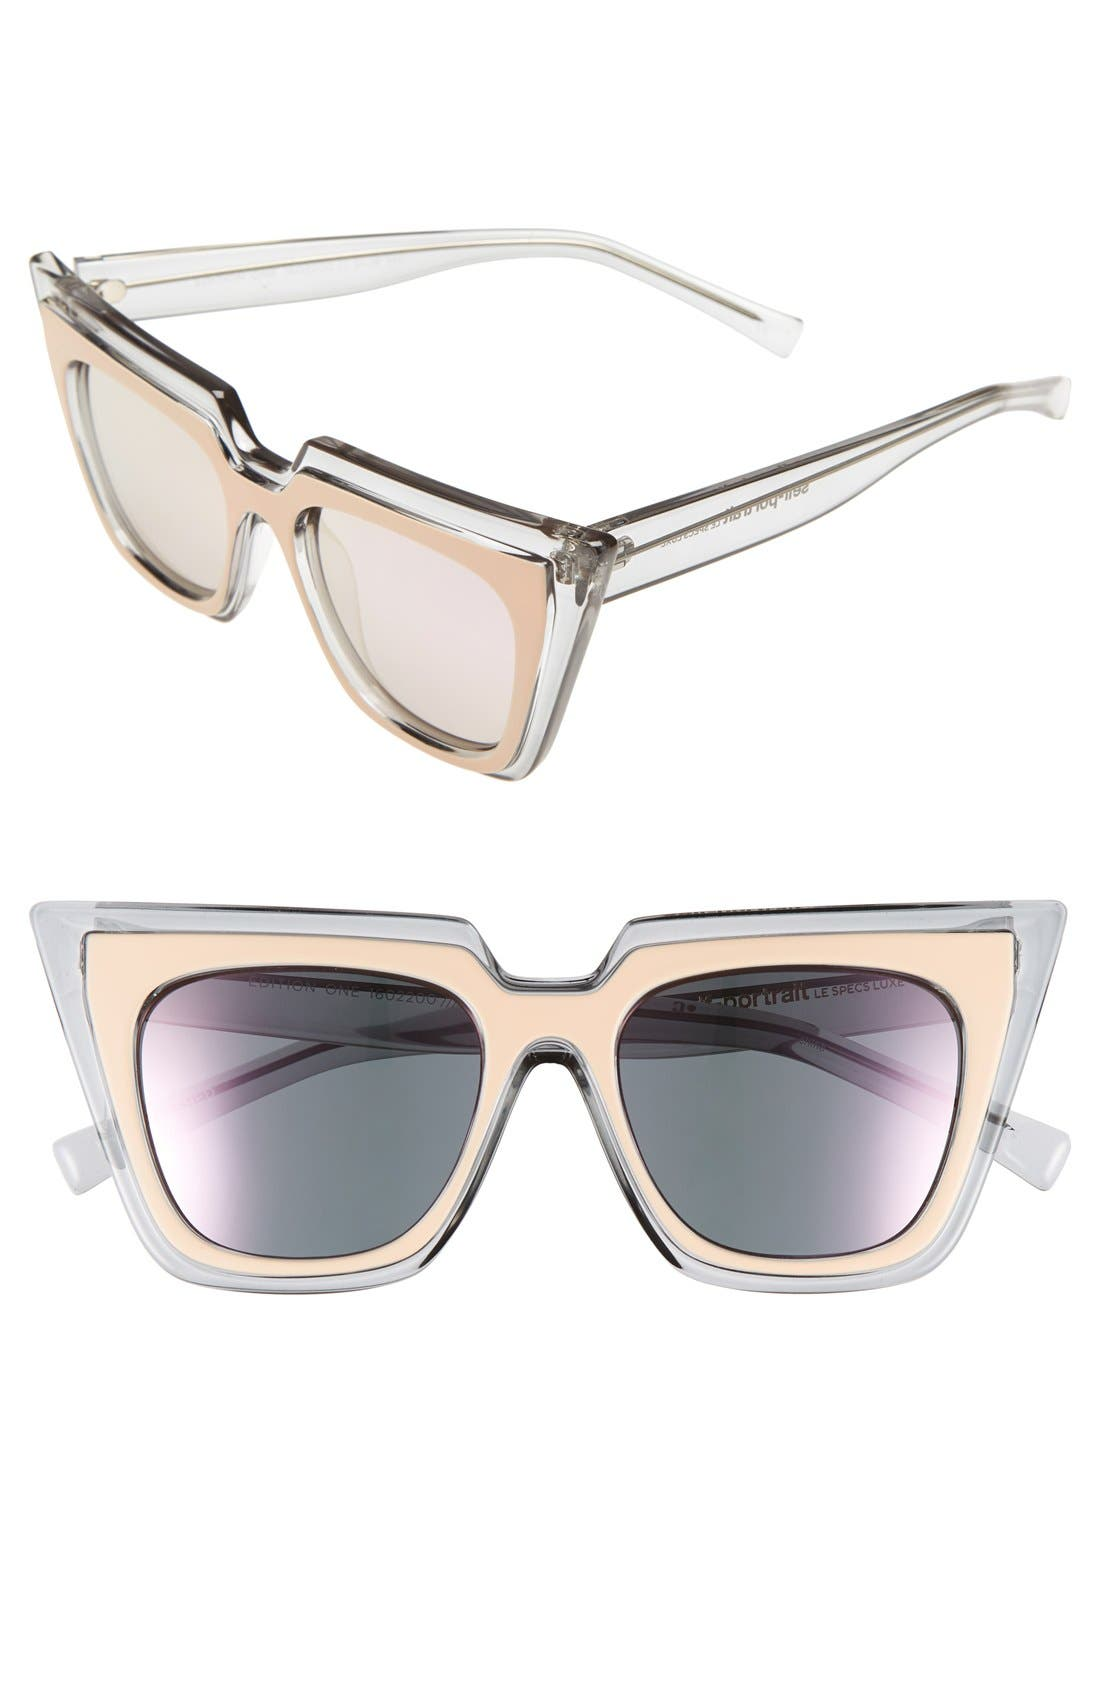 Alternate Image 1 Selected - Le Specs 'Edition One' 51mm Sunglasses